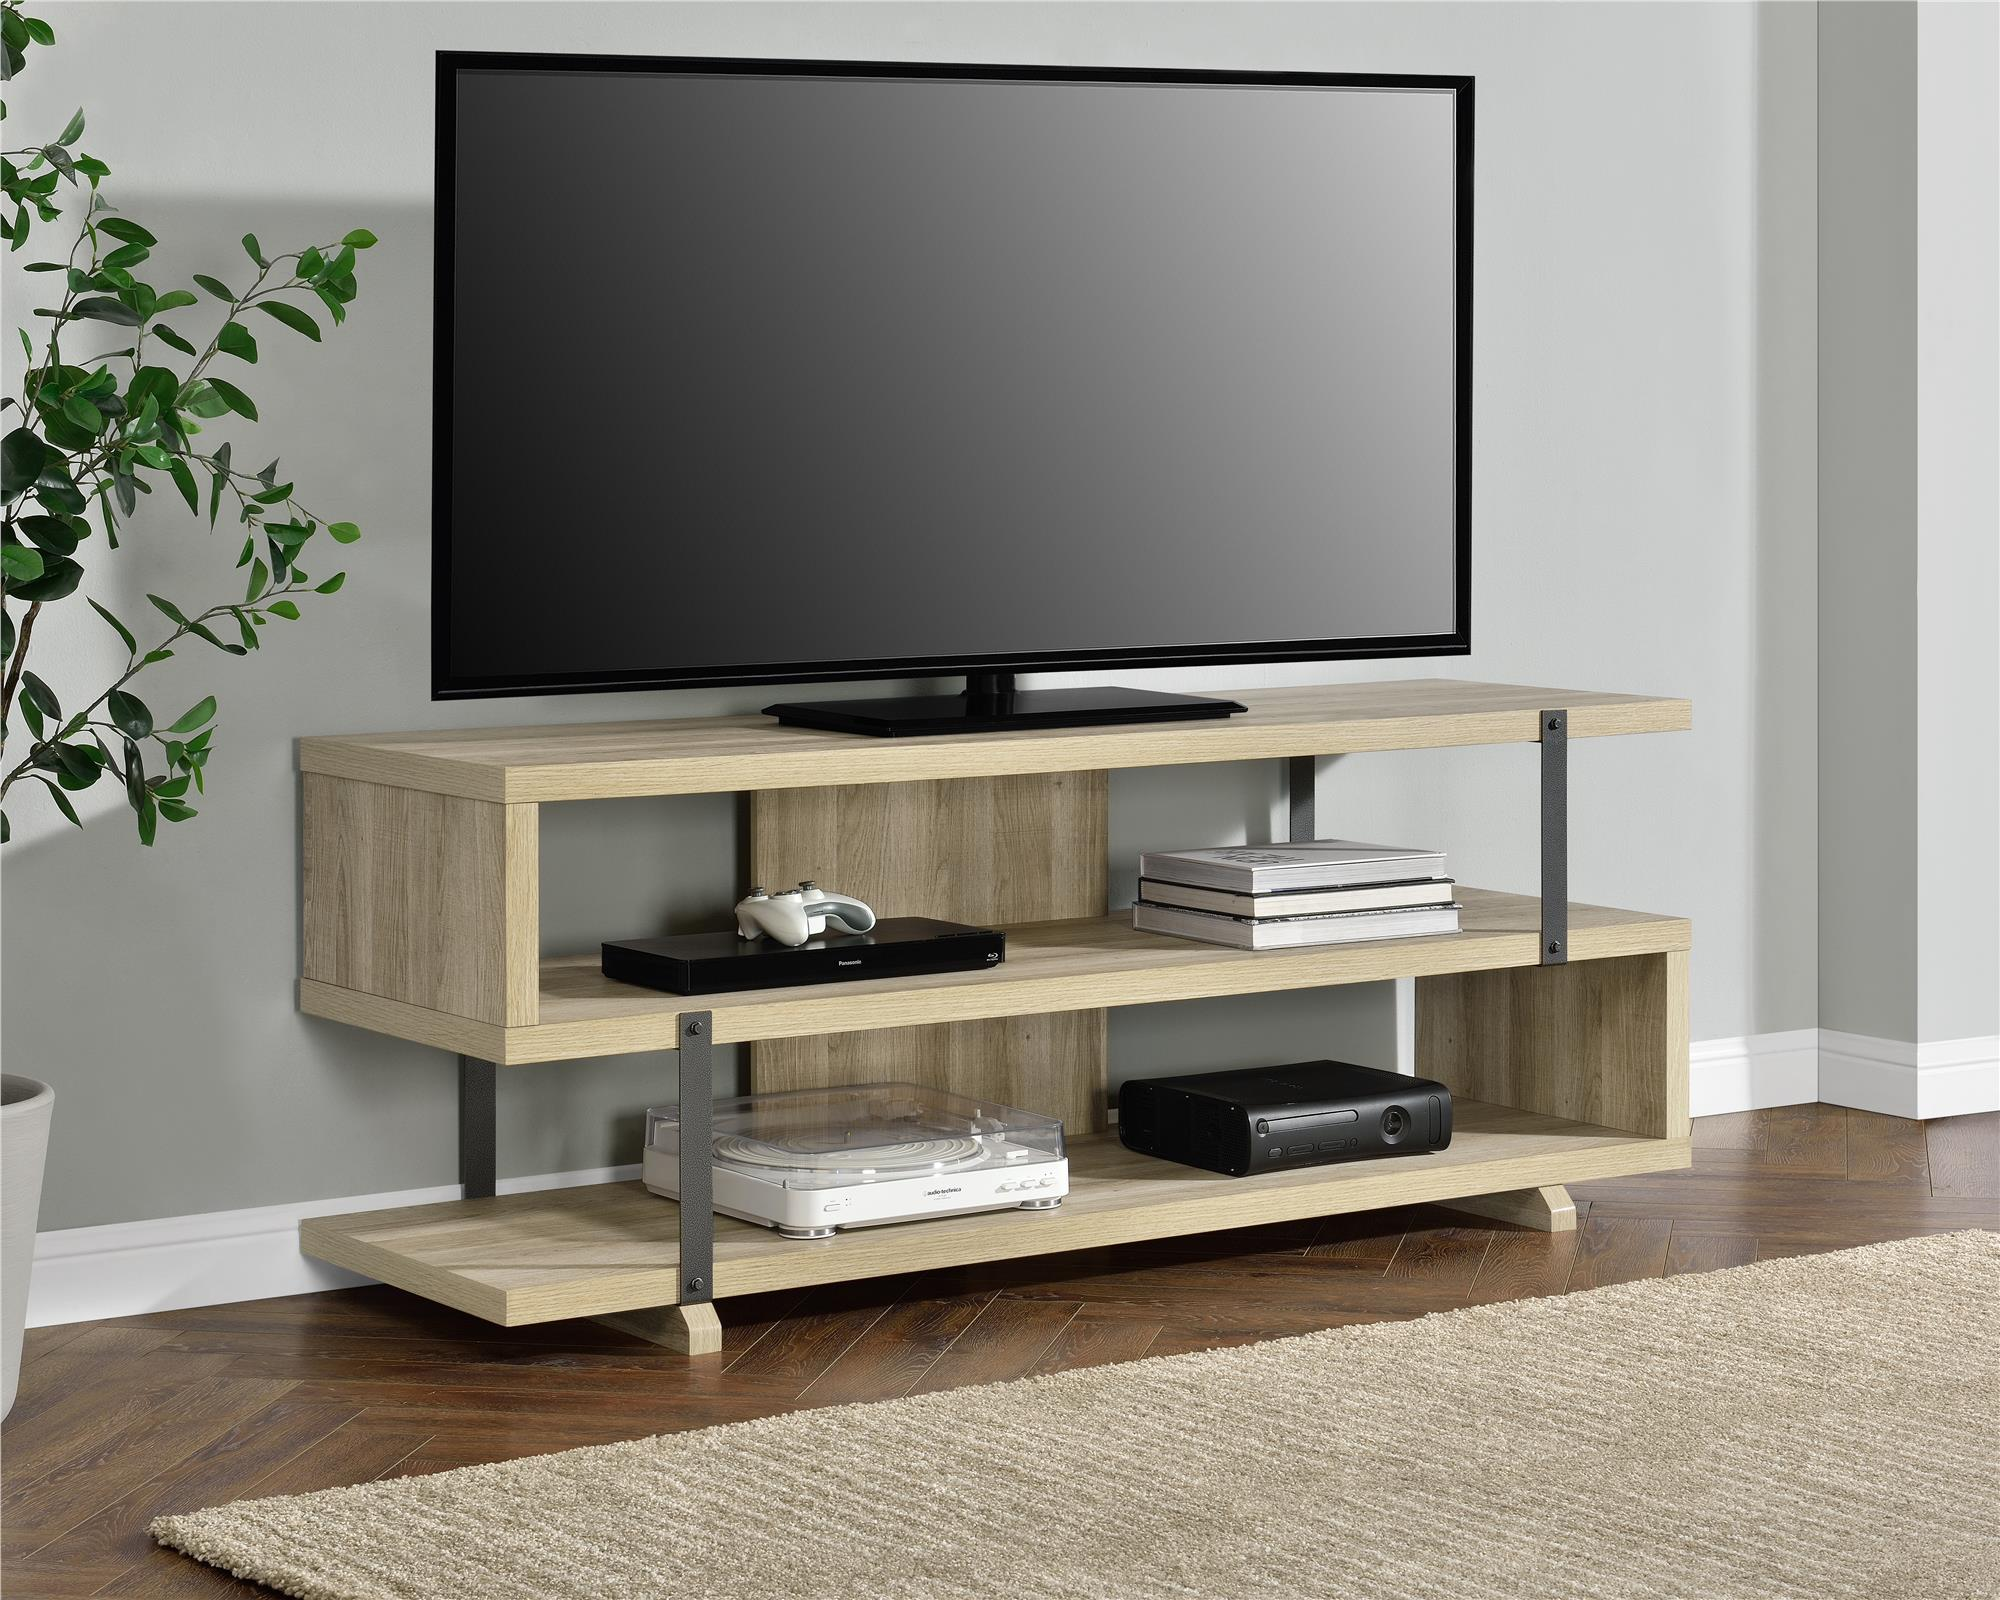 fantastic wall center entertainment storage wells as for large bookshelf zq cabinets fireplace sizing bookshelves ideas door magnificent x hanging unit wood place within tv